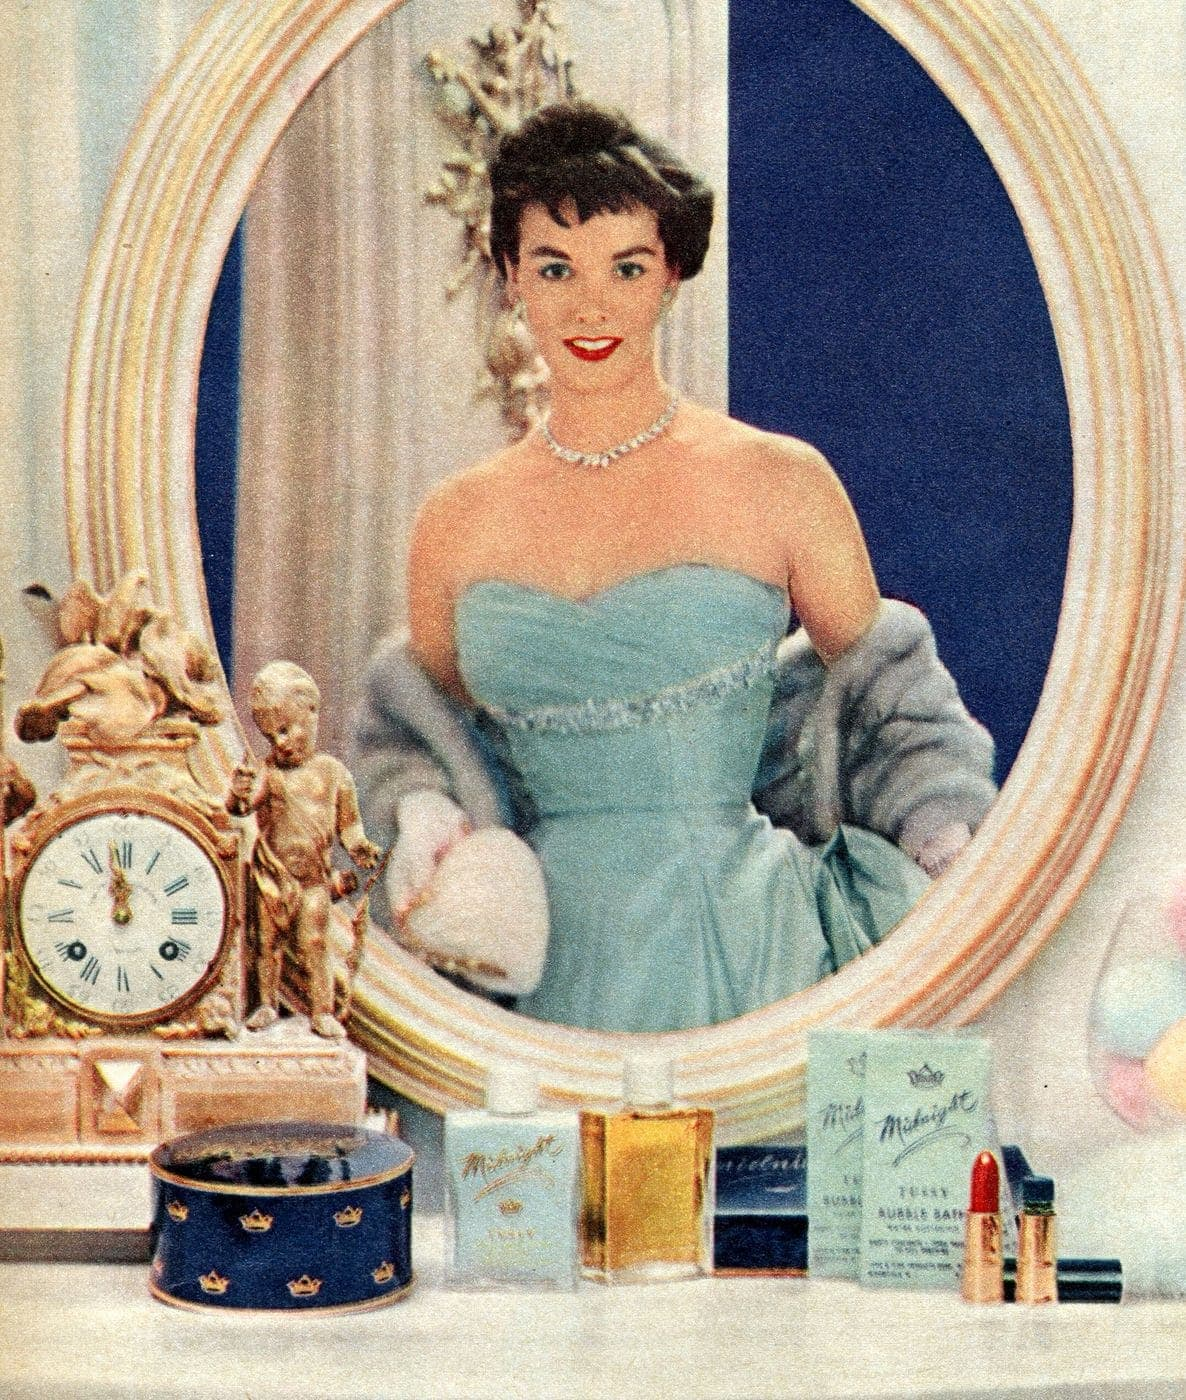 Bobbed hairstyle from the 1950s